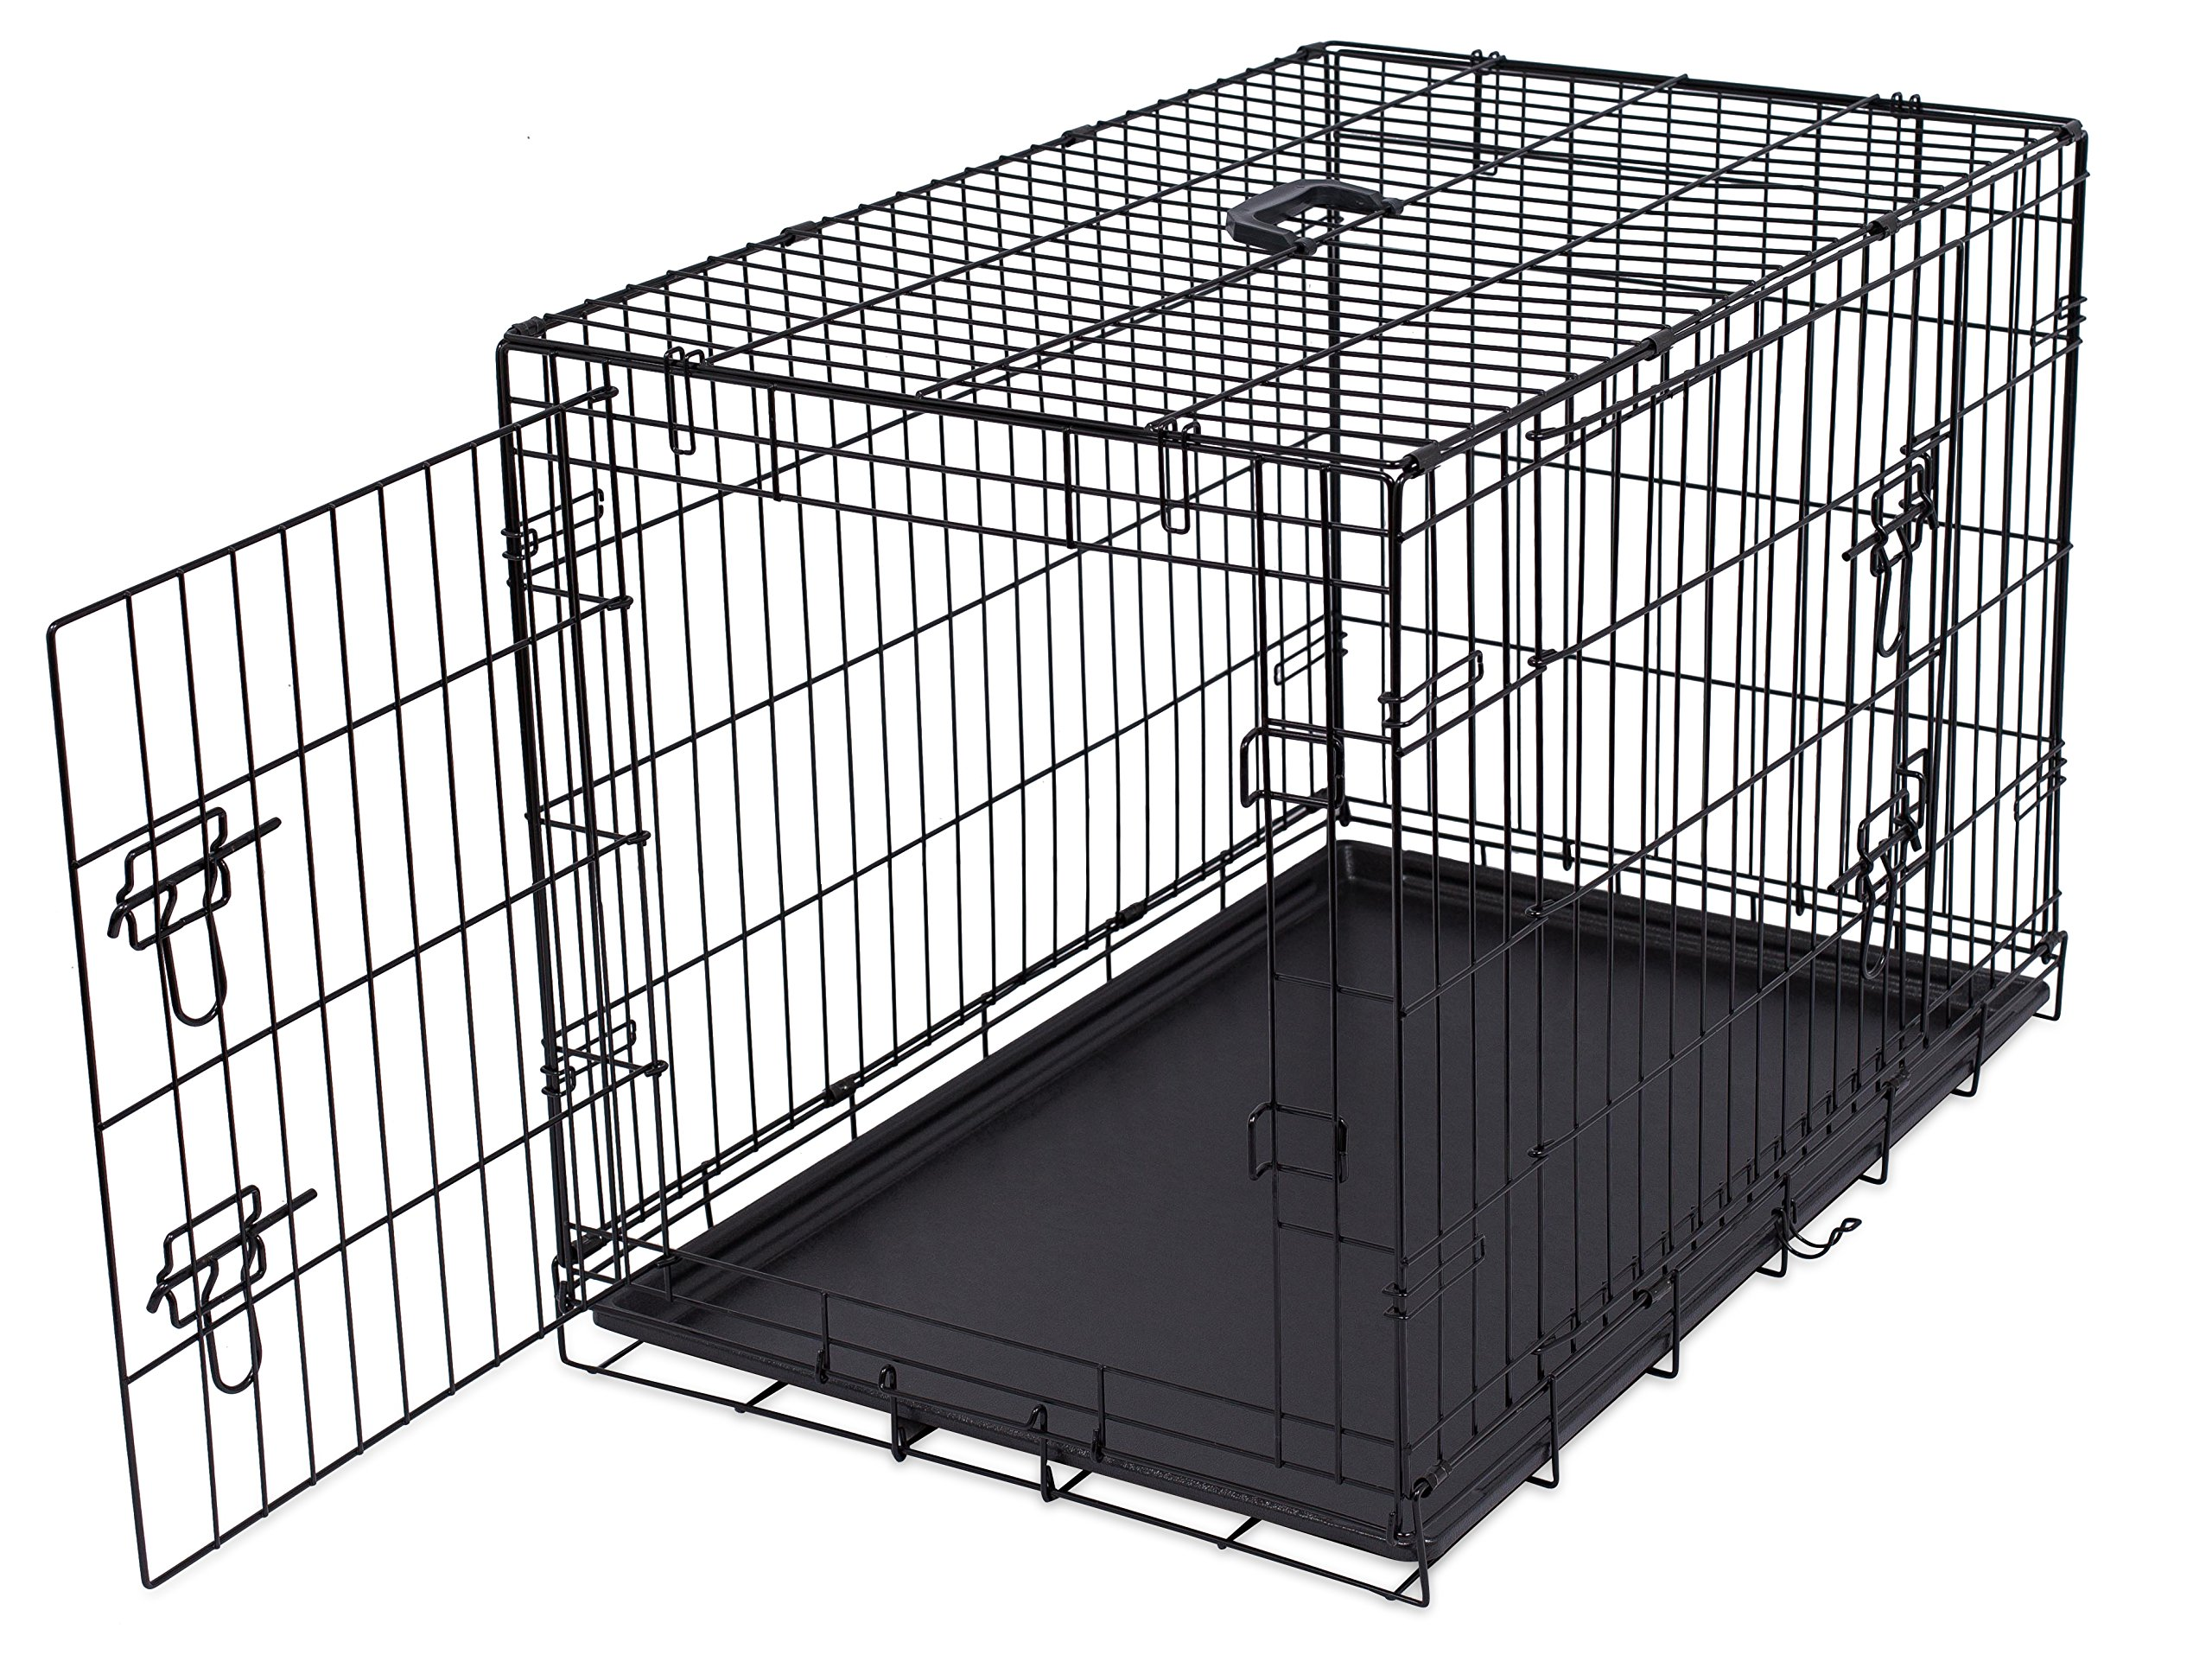 Internet's Best Double Door Steel Crates Collapsible and Foldable Wire Dog Kennel, 36 Inch (Medium), Black